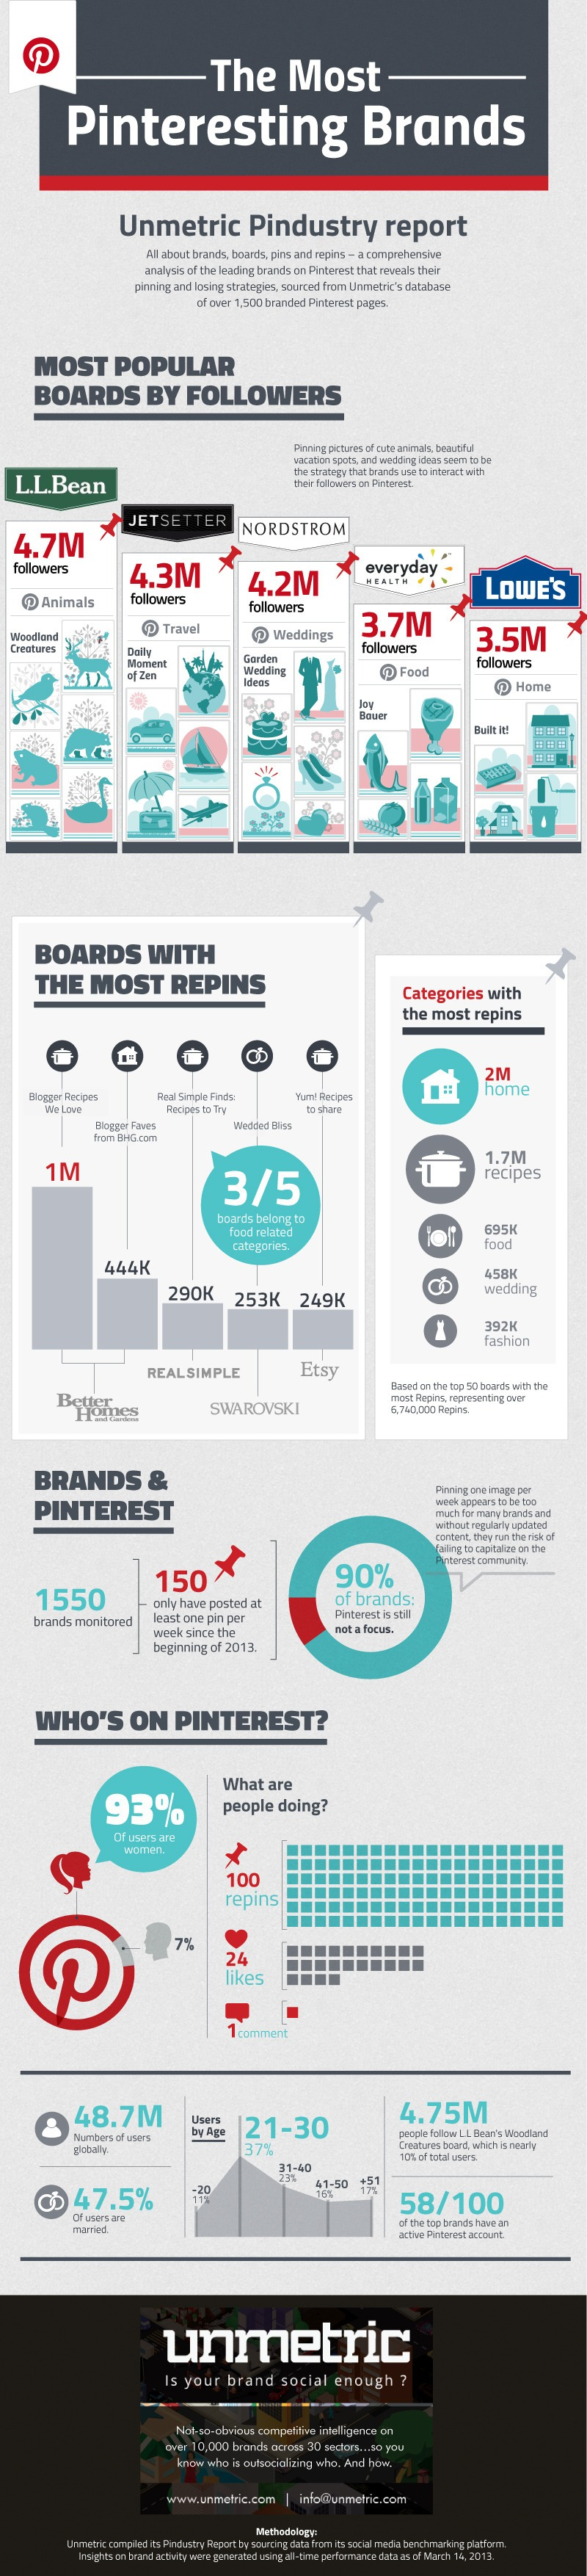 Popular-Pinterest-Categories